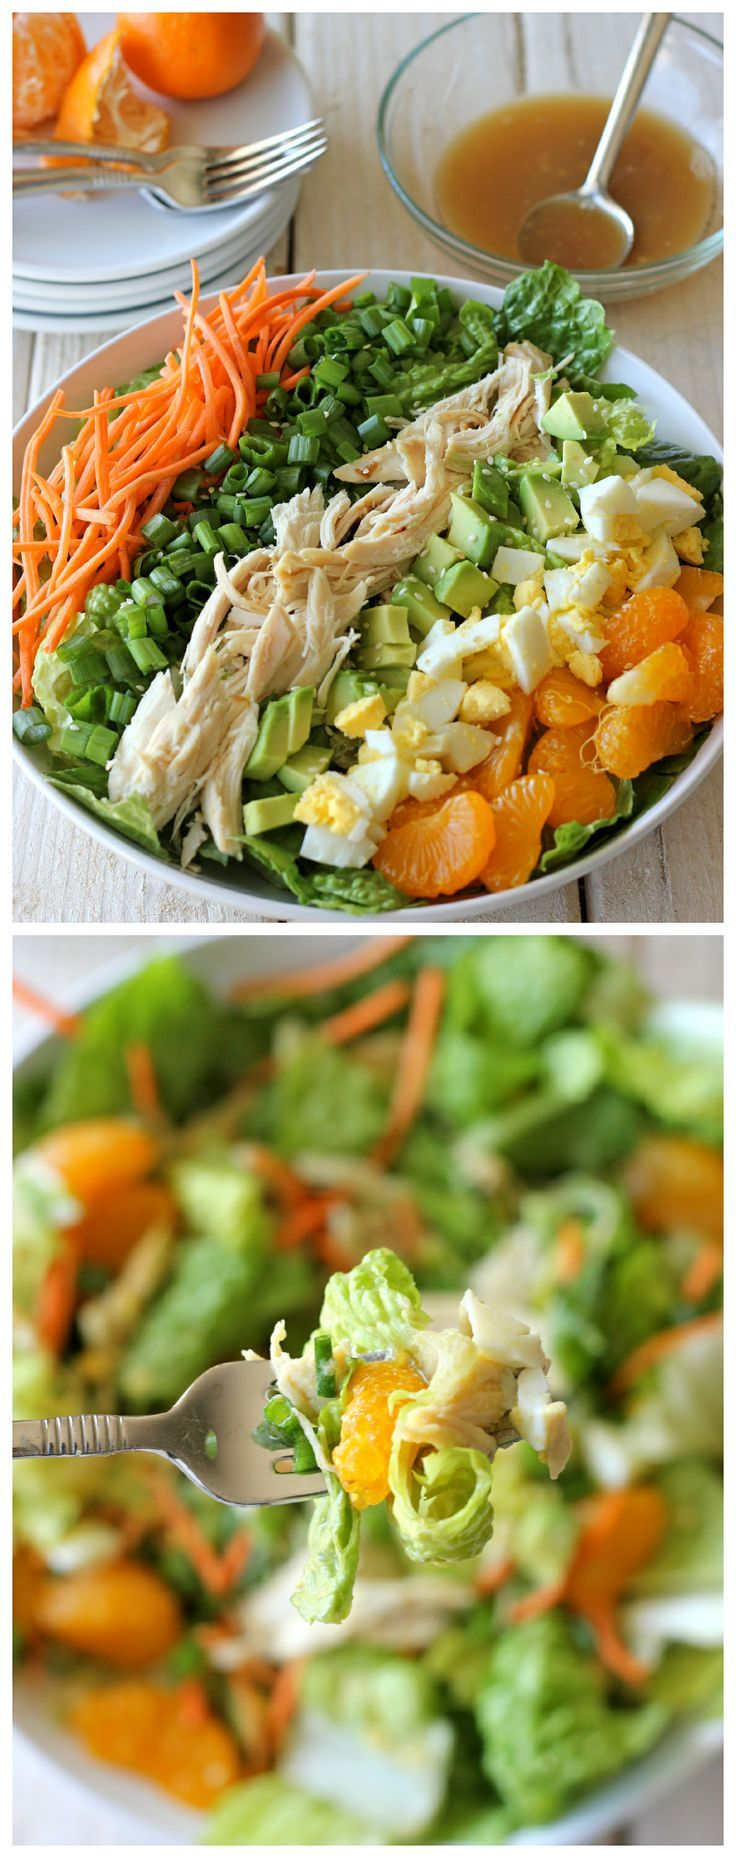 Chicken and Avocado Salad with Lime and Cilantro I love this site http://appetizerrecipe.net/posts/Chicken-and-Avocado-Salad-with-Lime-and-Cilantro-53924